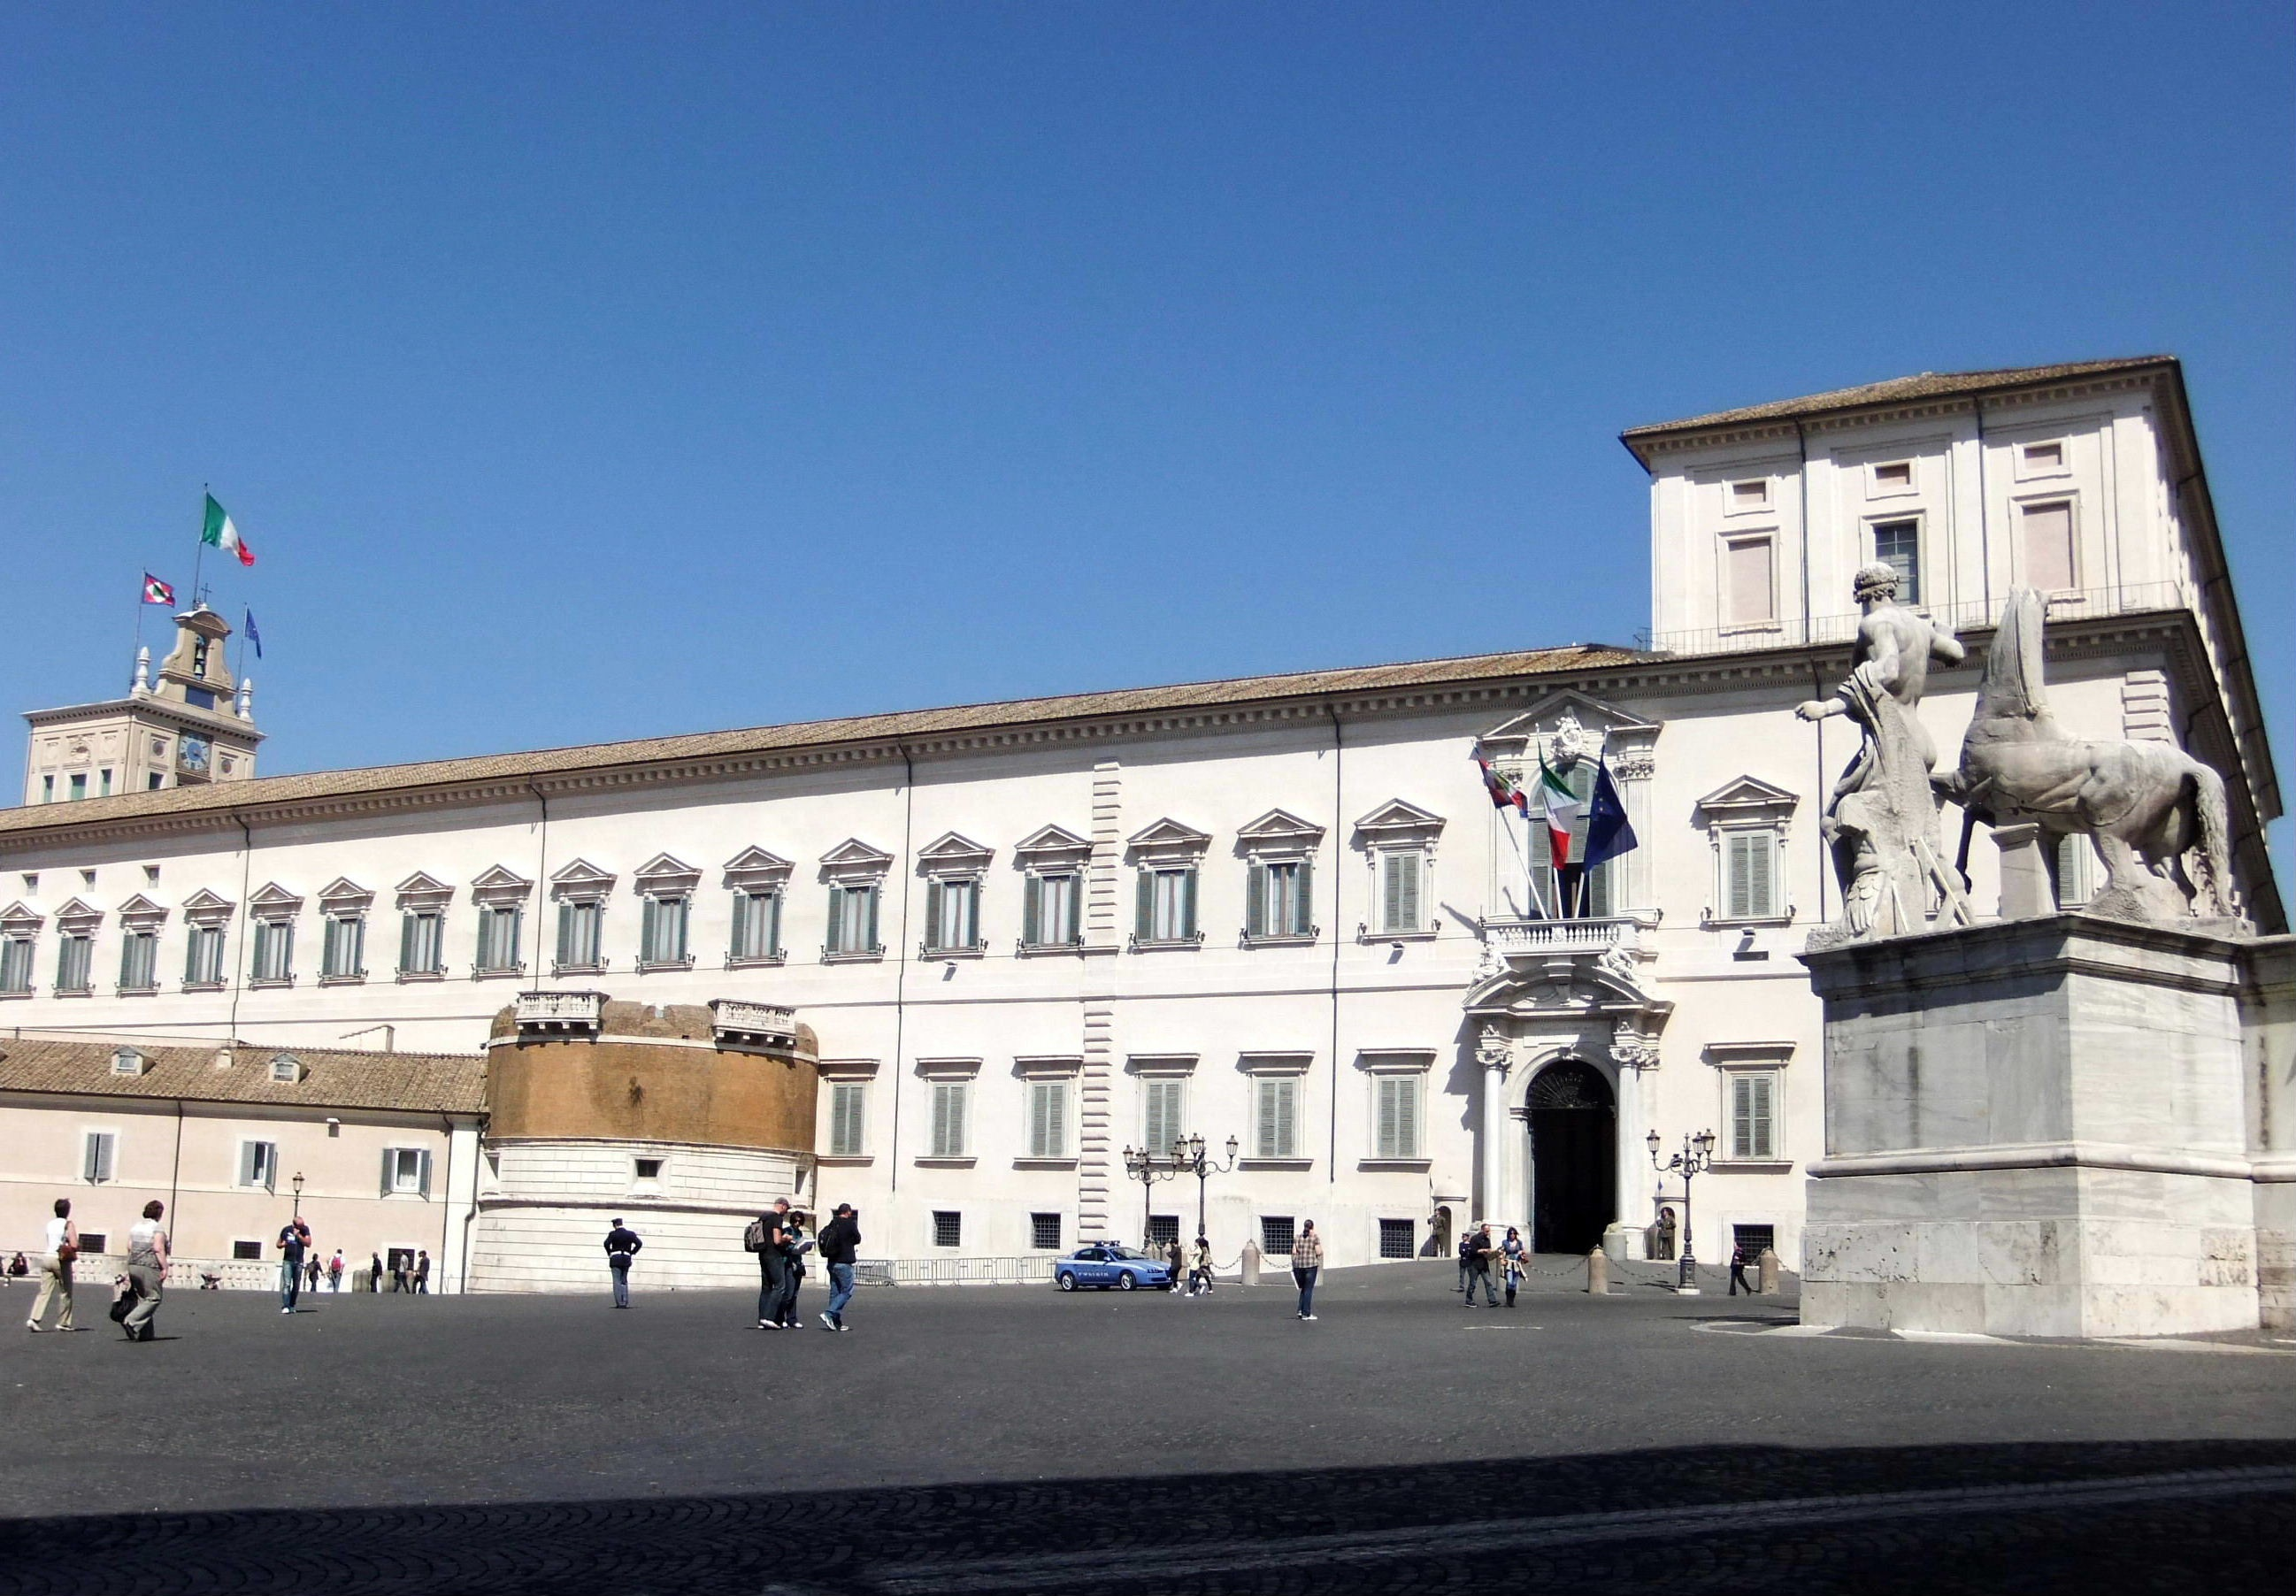 Quirinal Palace opening 2015 Rome